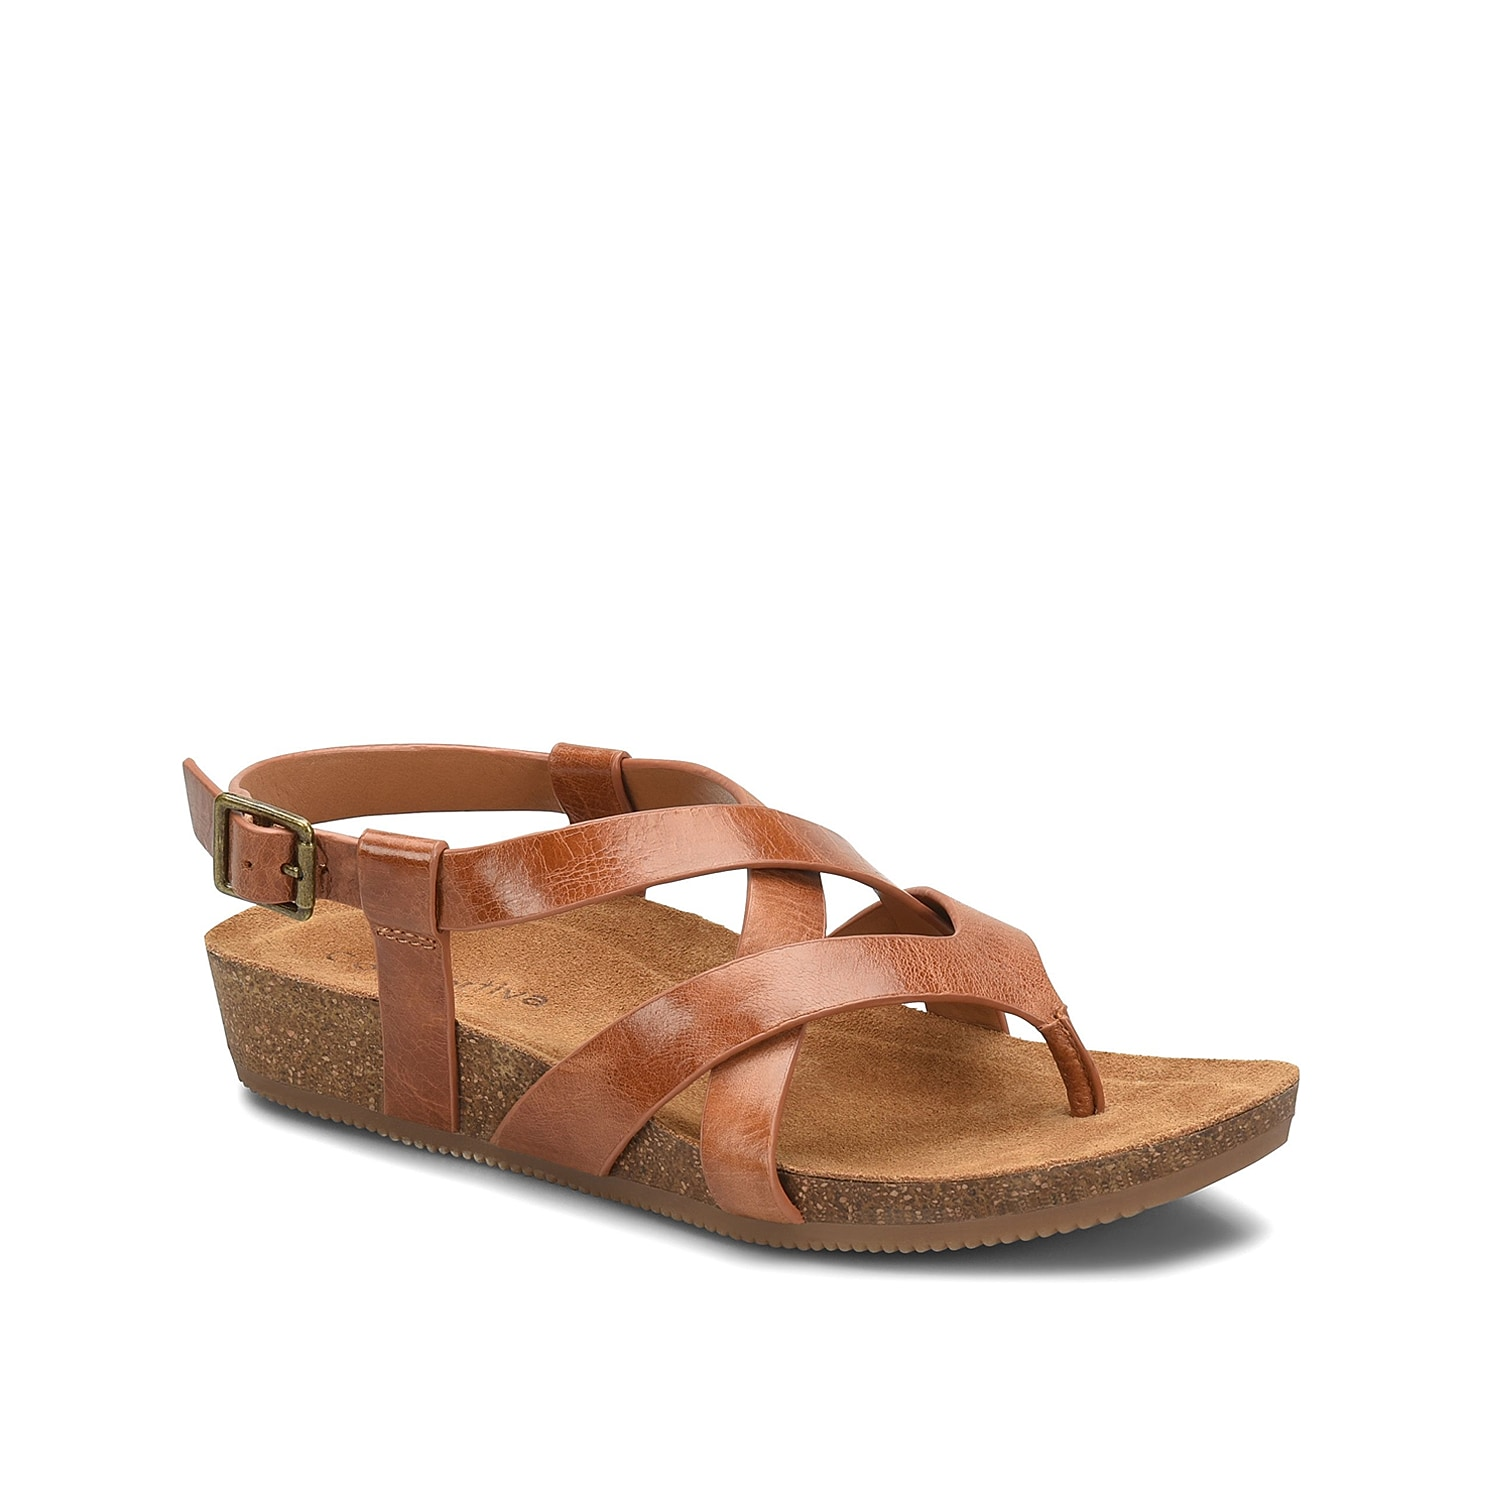 Casual meets comfort with the Gamora wedge sandal from Comfortiva. This strappy silhouette is fashioned with a leather upper and a cork heel for some height!